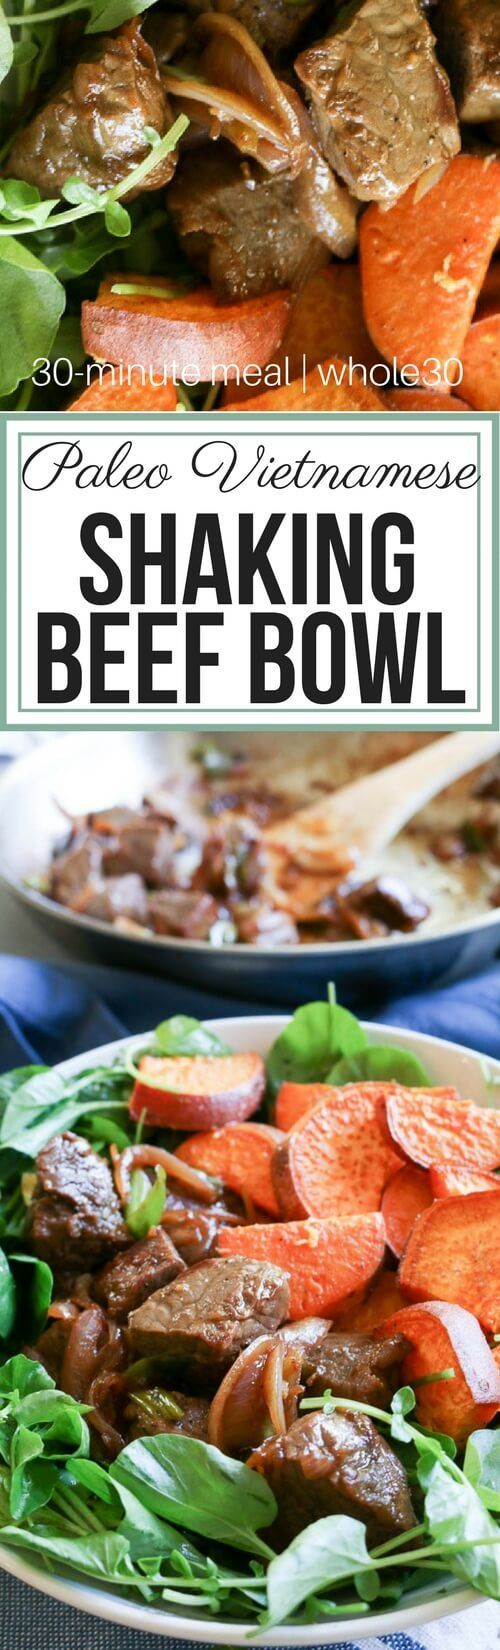 Paleo Vietnamese Shaking Beef Bowl with Lime-Pepper Sauce is full of bold flavors as pan-seared steaks, onions, ginger and lime-pepper dipping sauce come together. With its pungent bite, the watercress is a great contrast to the beef and roasted sweet pot